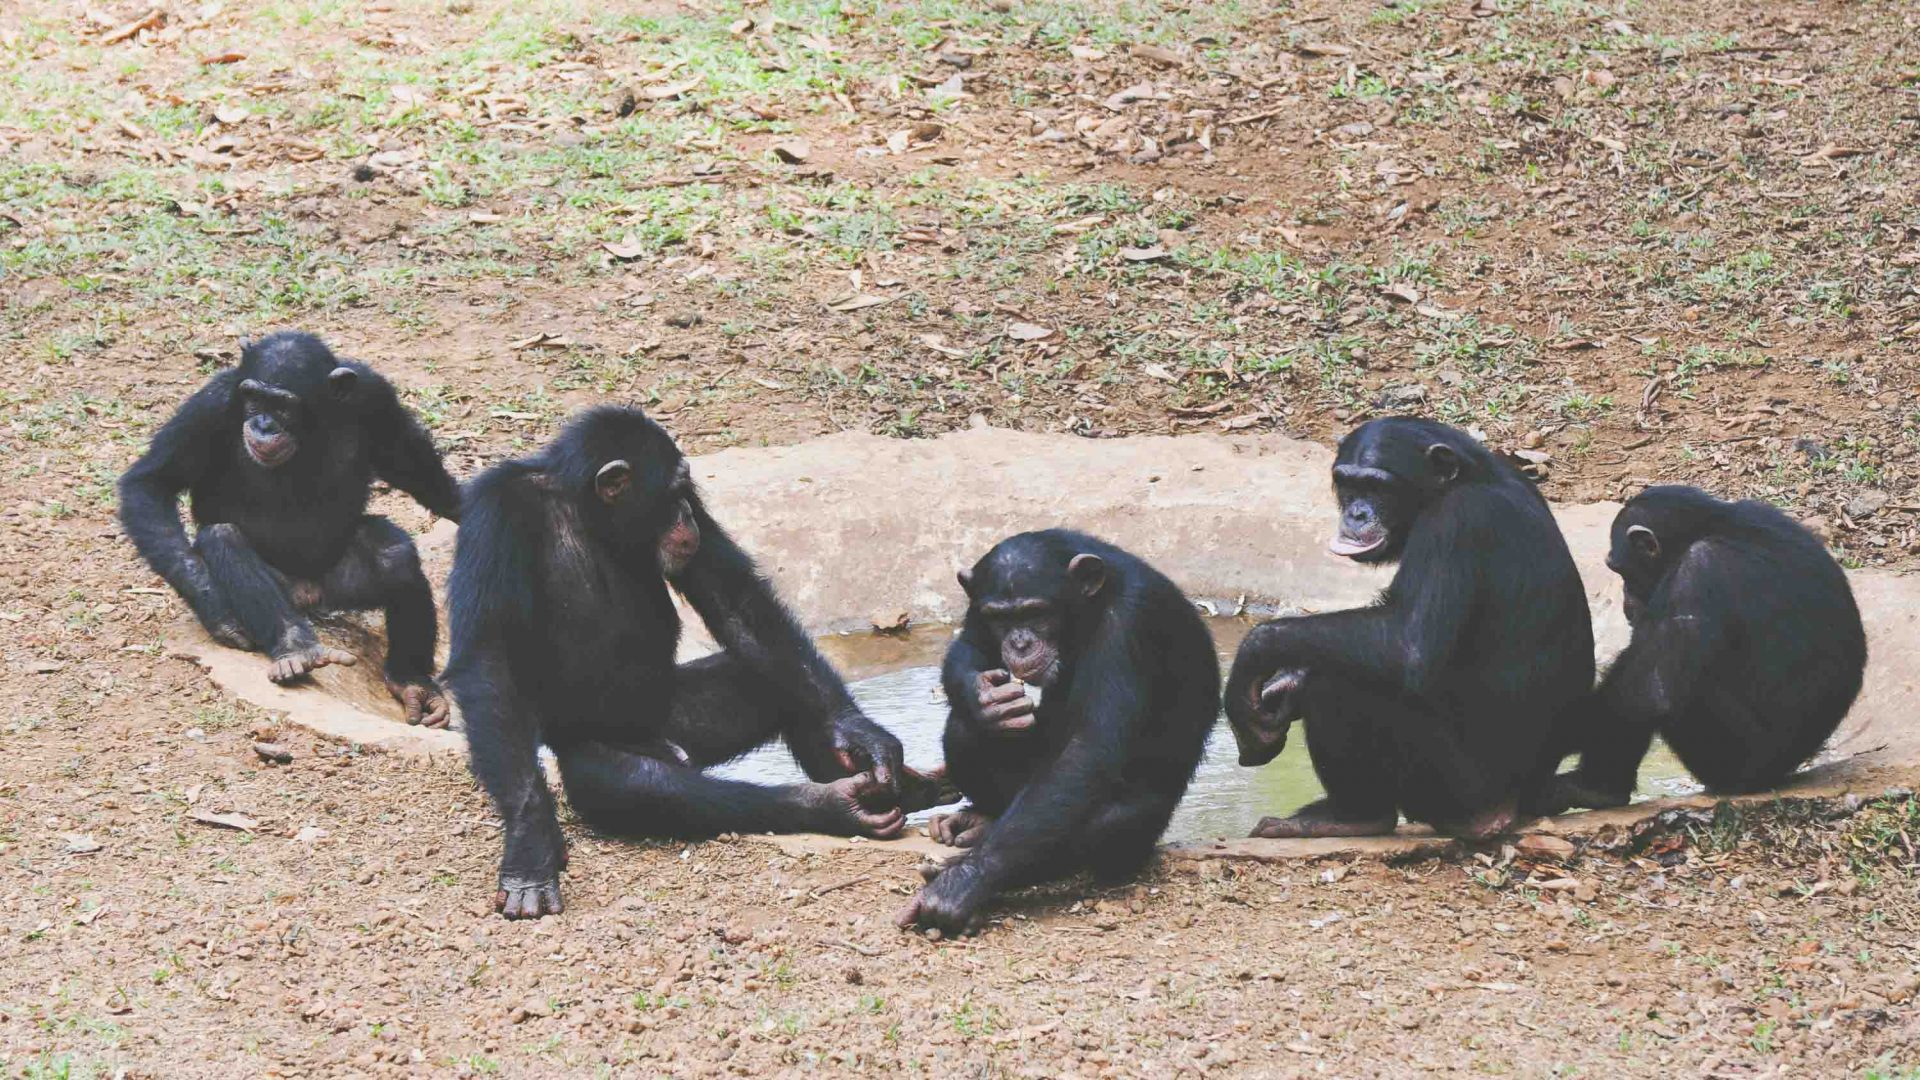 Chimps sit together at the Tacugama Chimpanzee sanctuary, Sierra Leone.